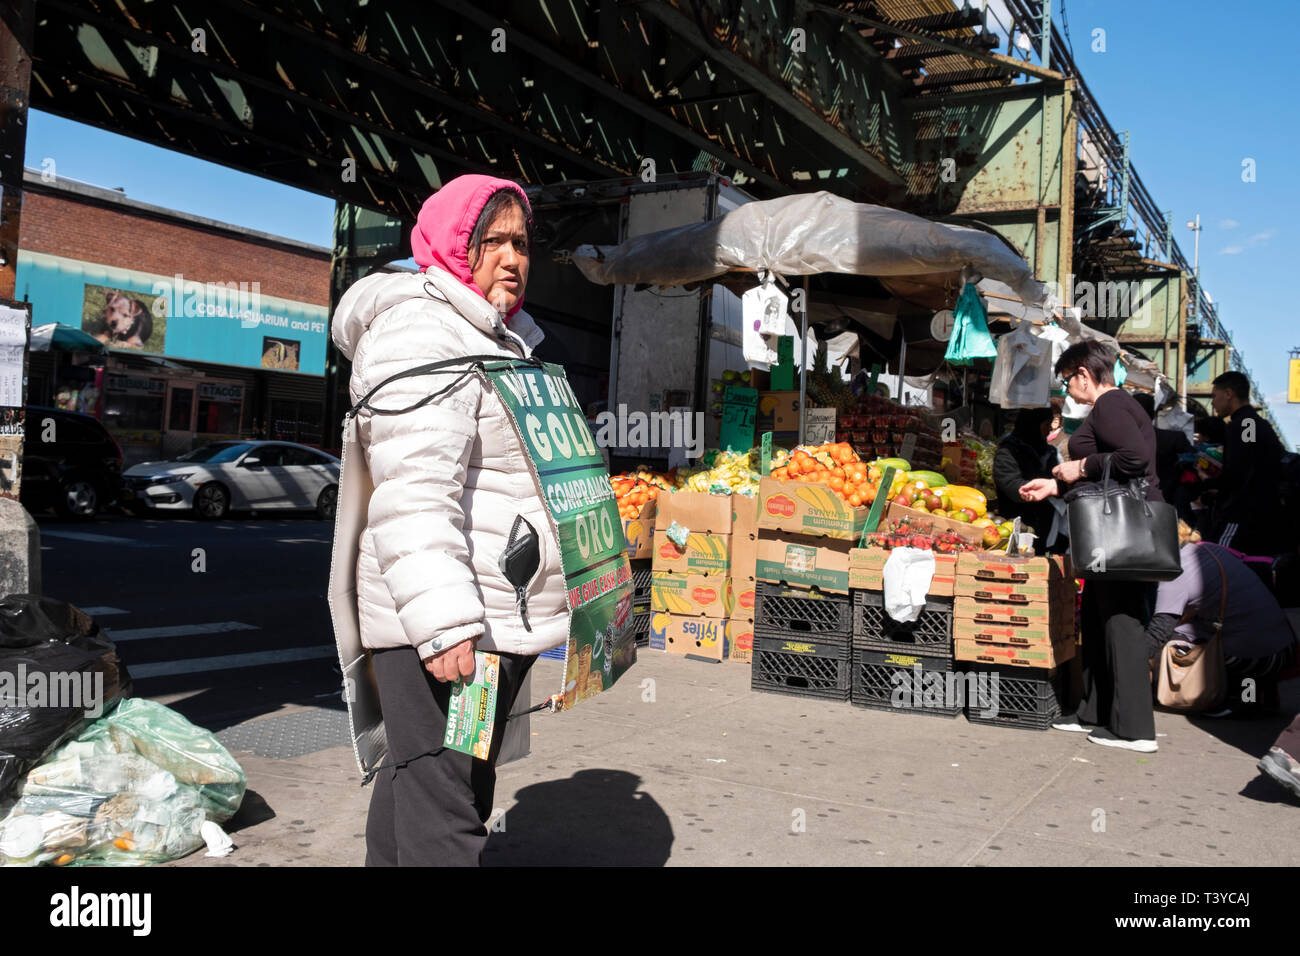 A Spanish speaking woman under the el wearing a sandwich board & giving out leaflets for a jeweler who want to buy gold. In Jackson Heights, Queens NY - Stock Image